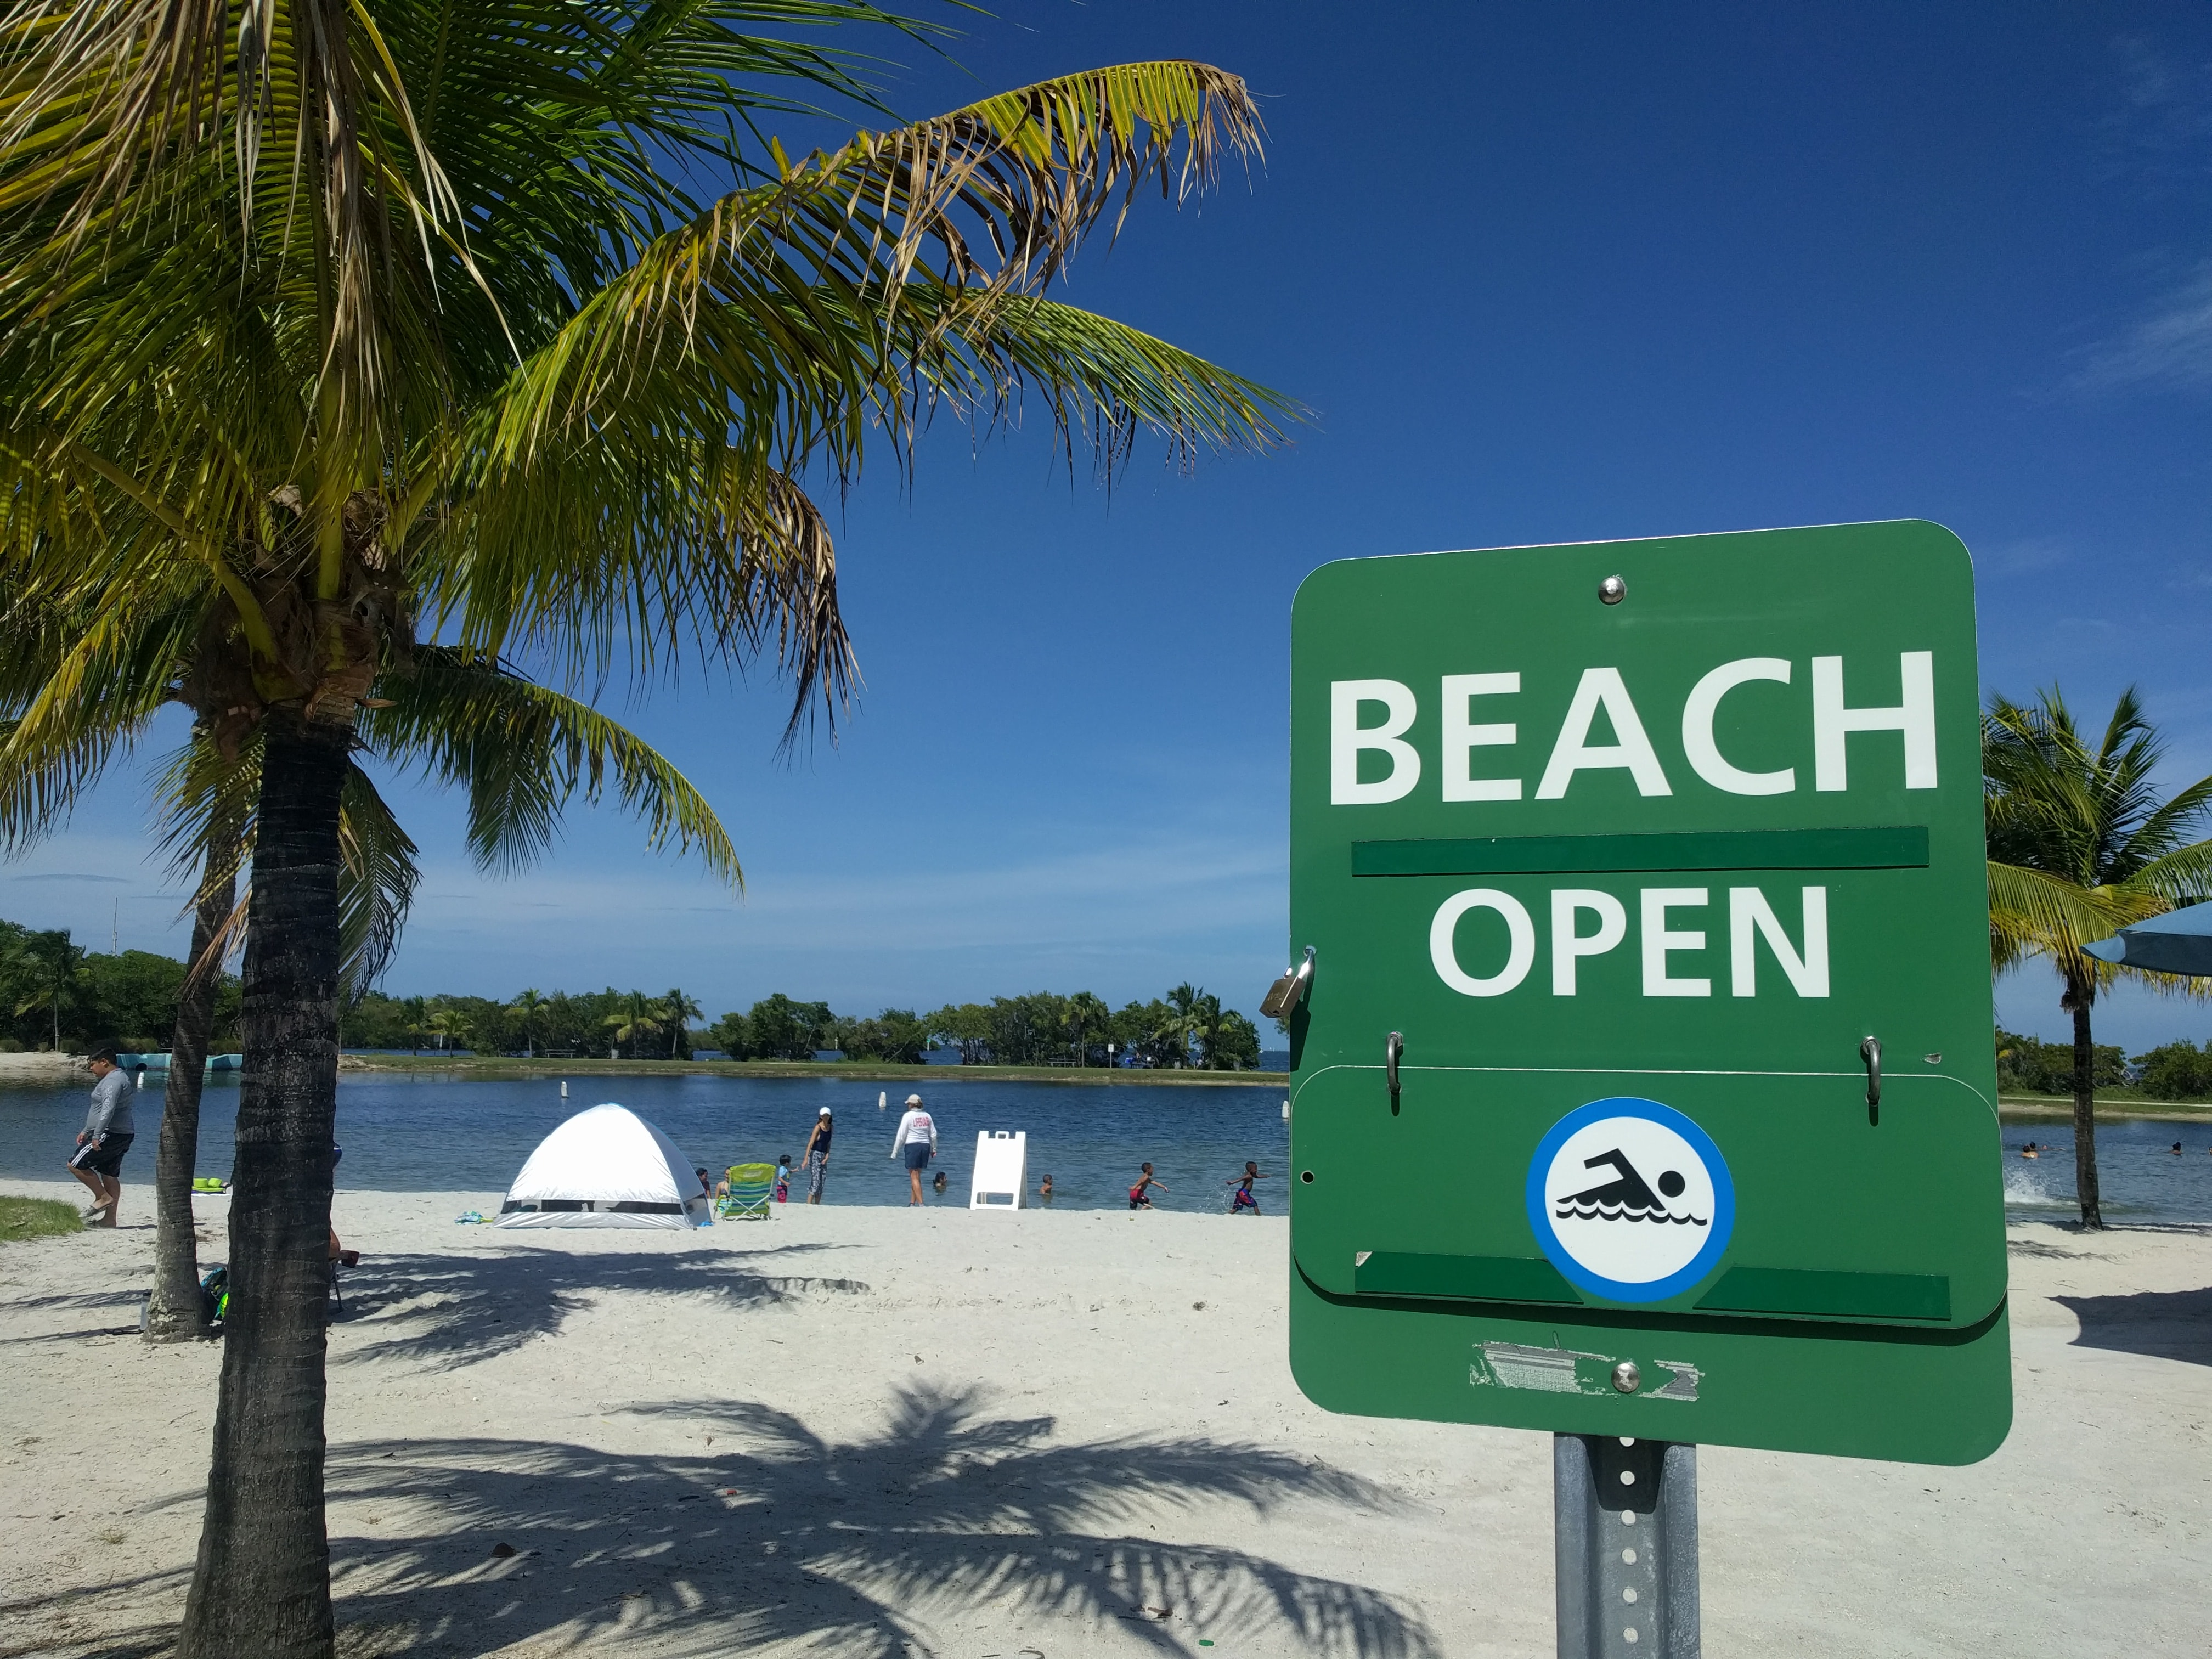 Green Beach Open sign at the sand beach in Homestead, Florida